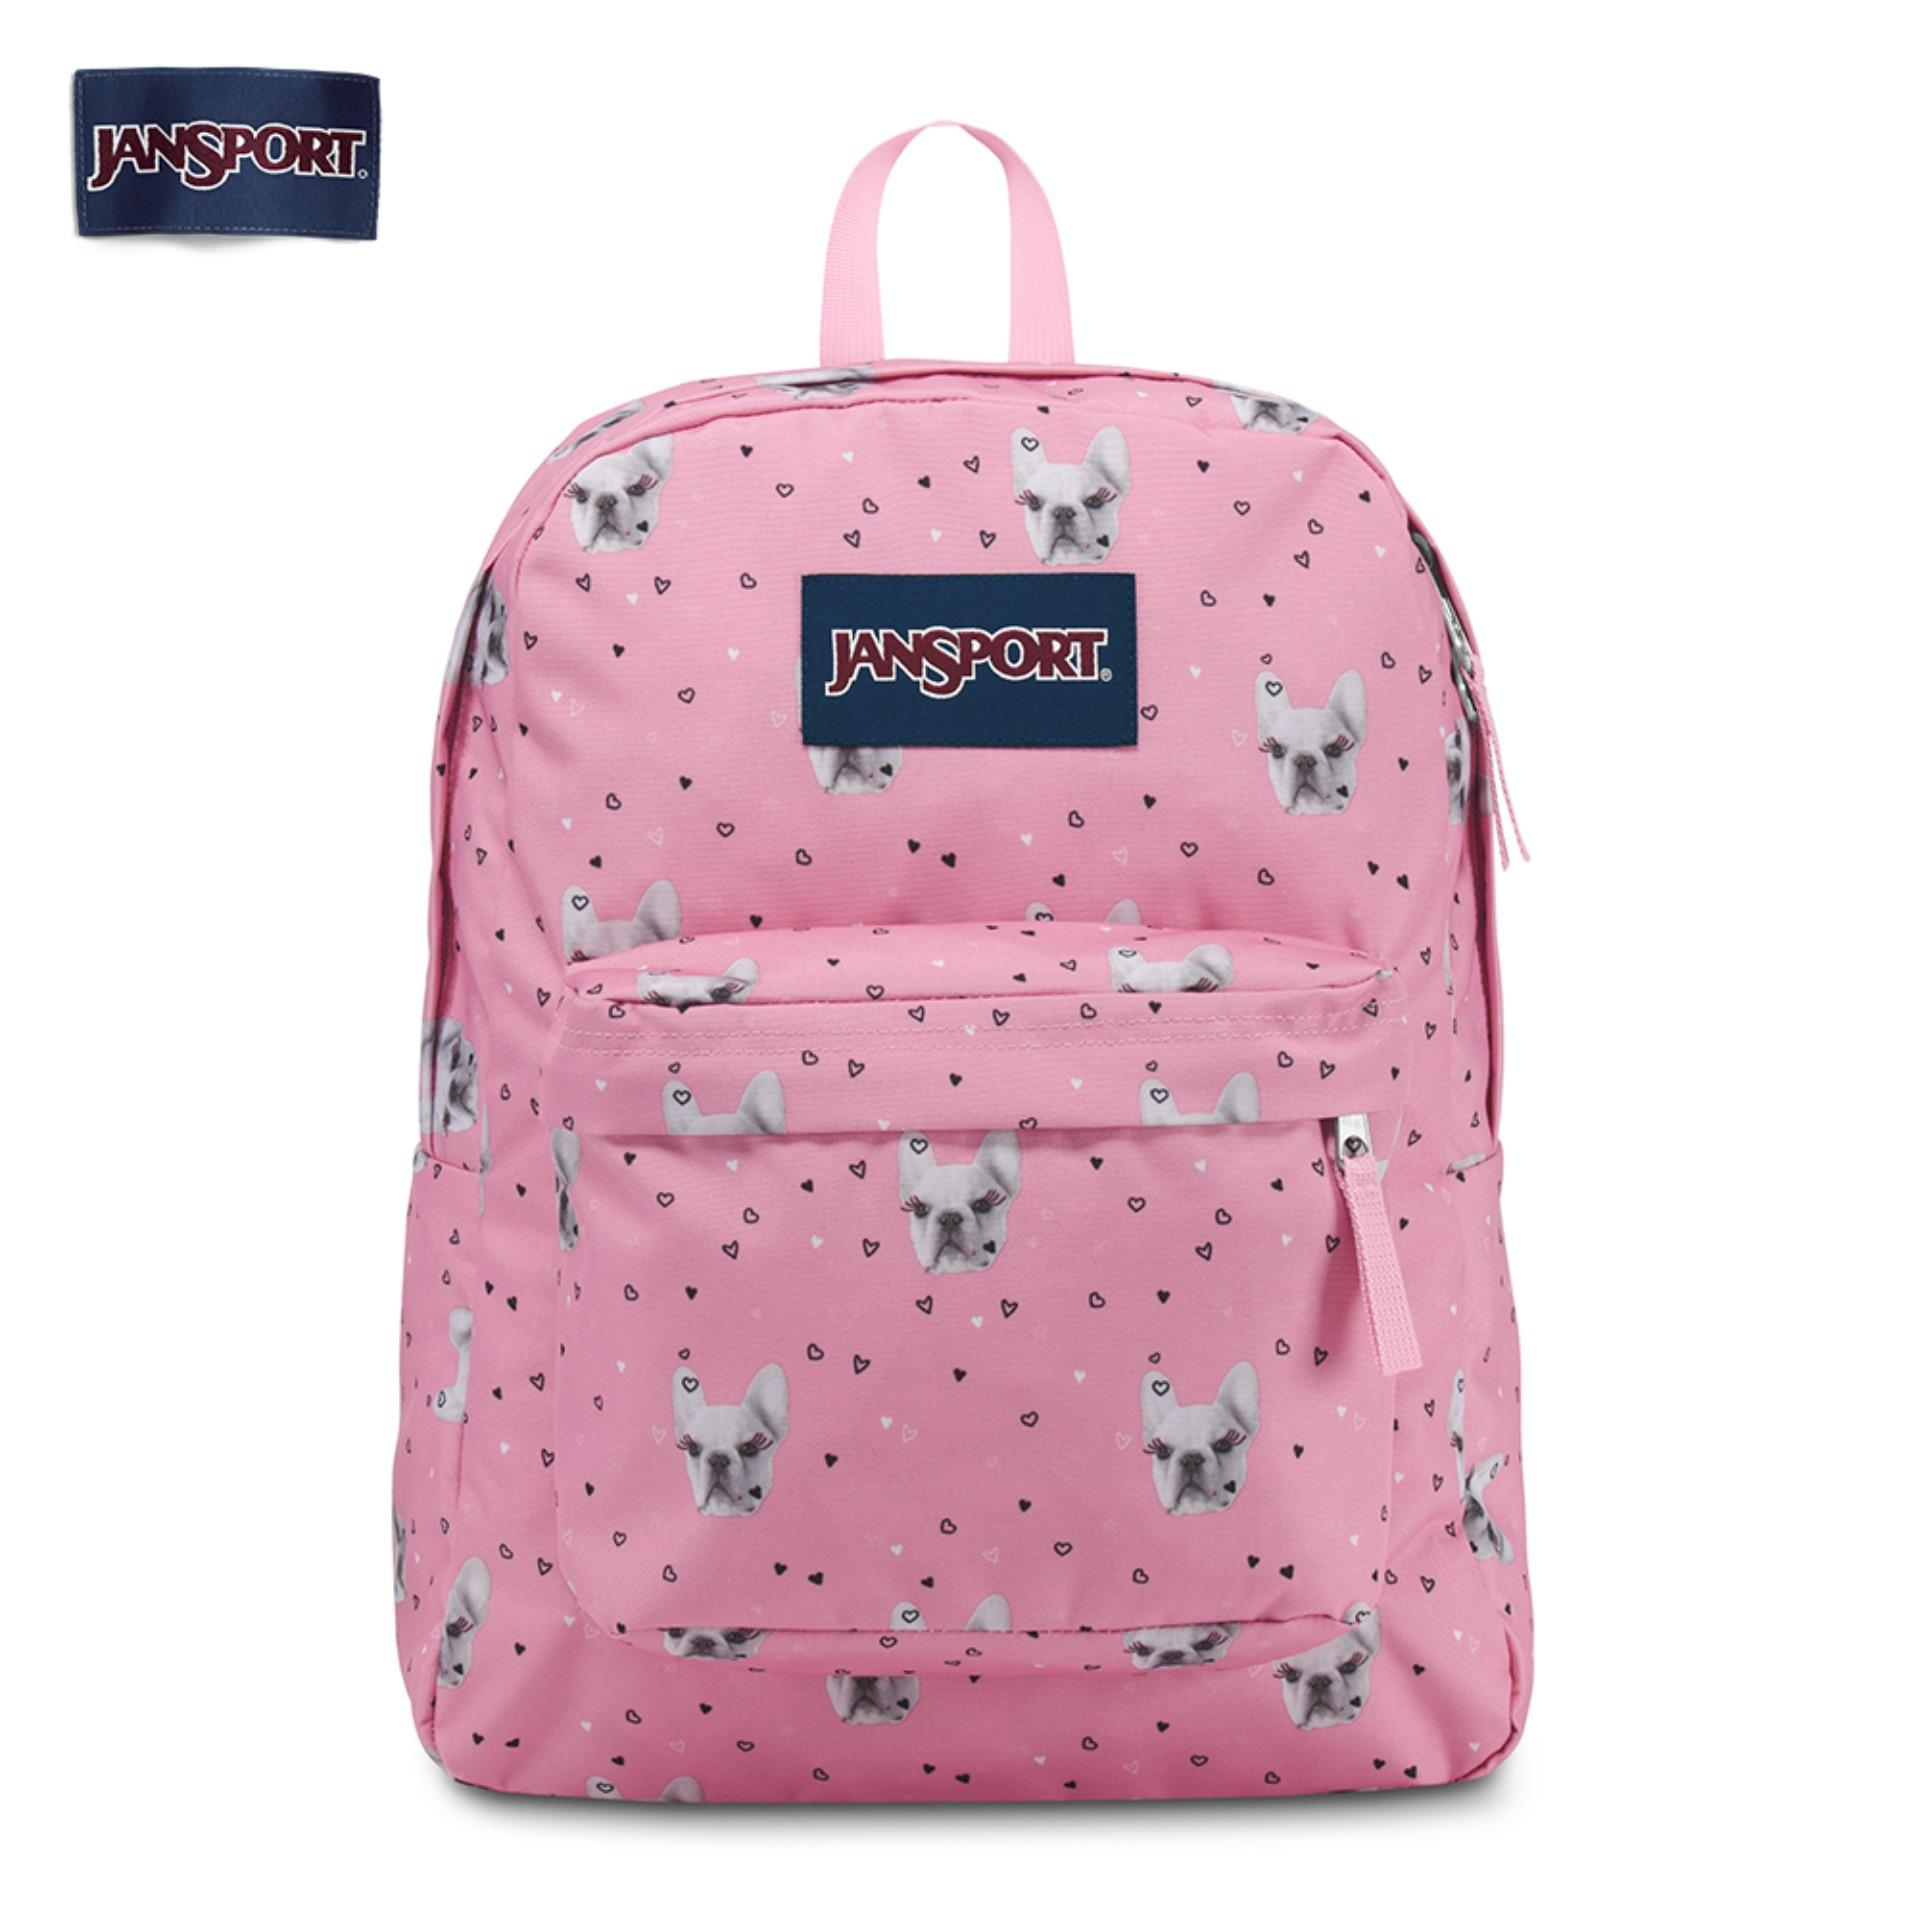 JanSport Womens Classic Superbreak T501 Backpack 600 Denier Polyester  Backpack 1521ab291c301